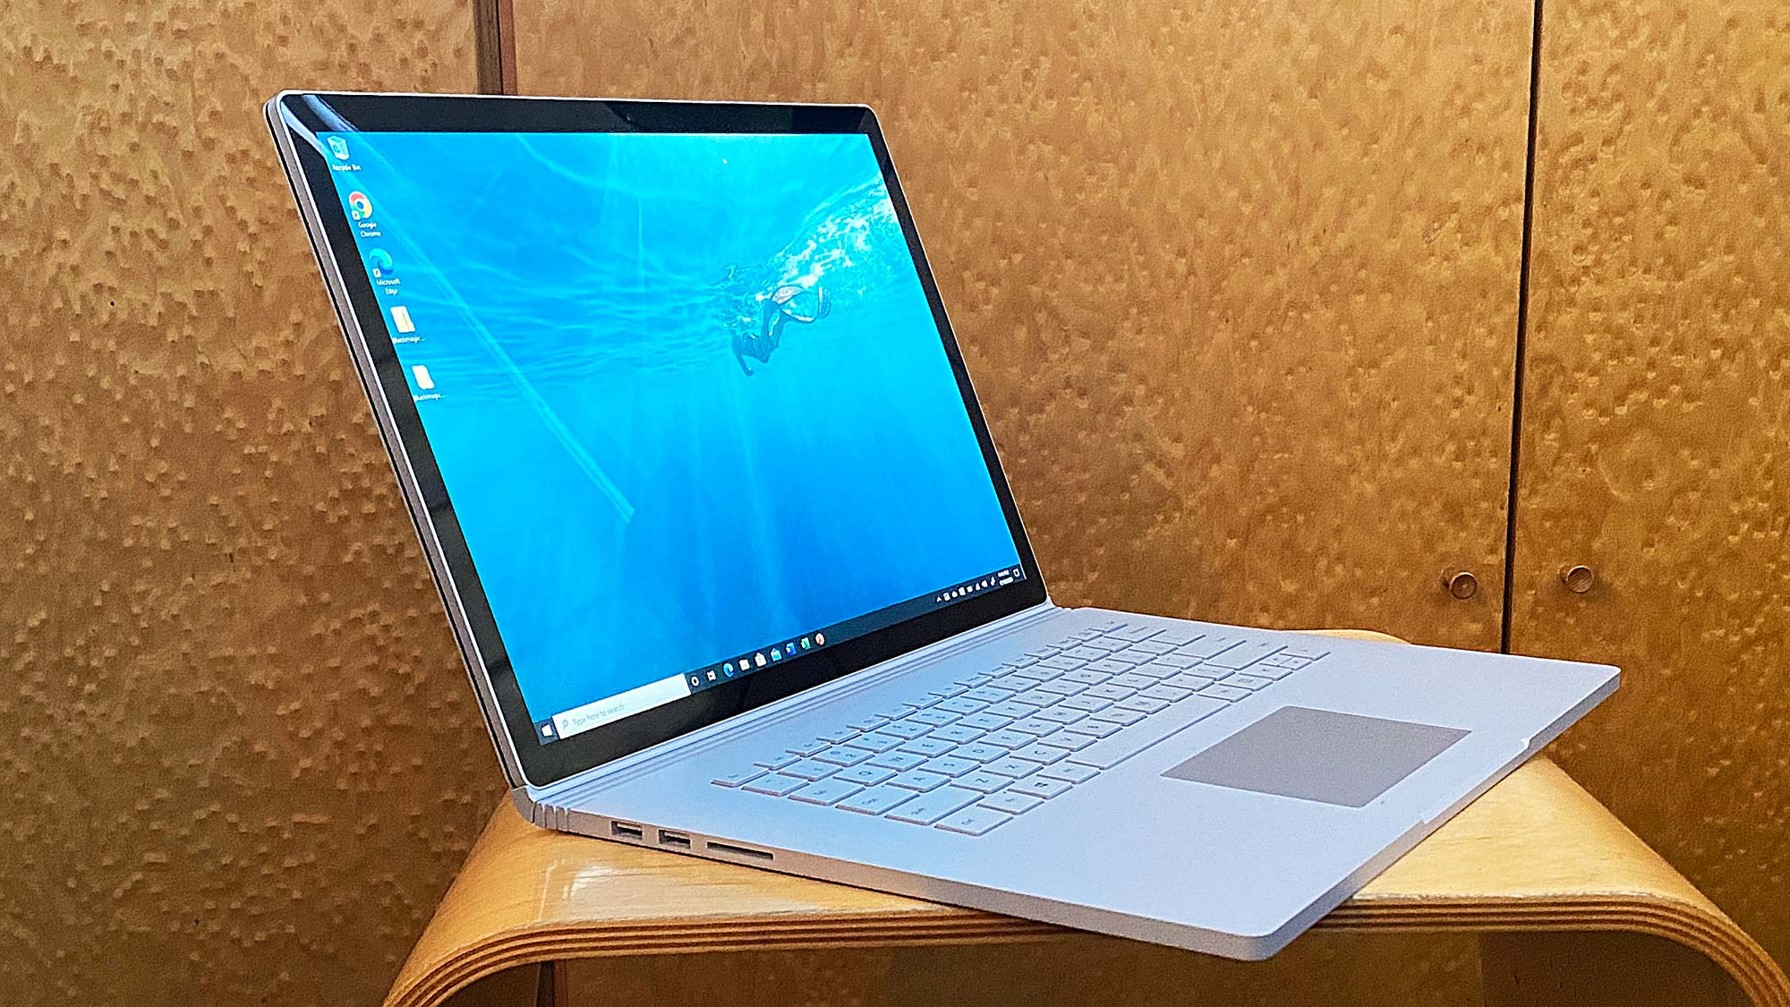 Microsoft Surface Book 3 (15-inch) REVIEW